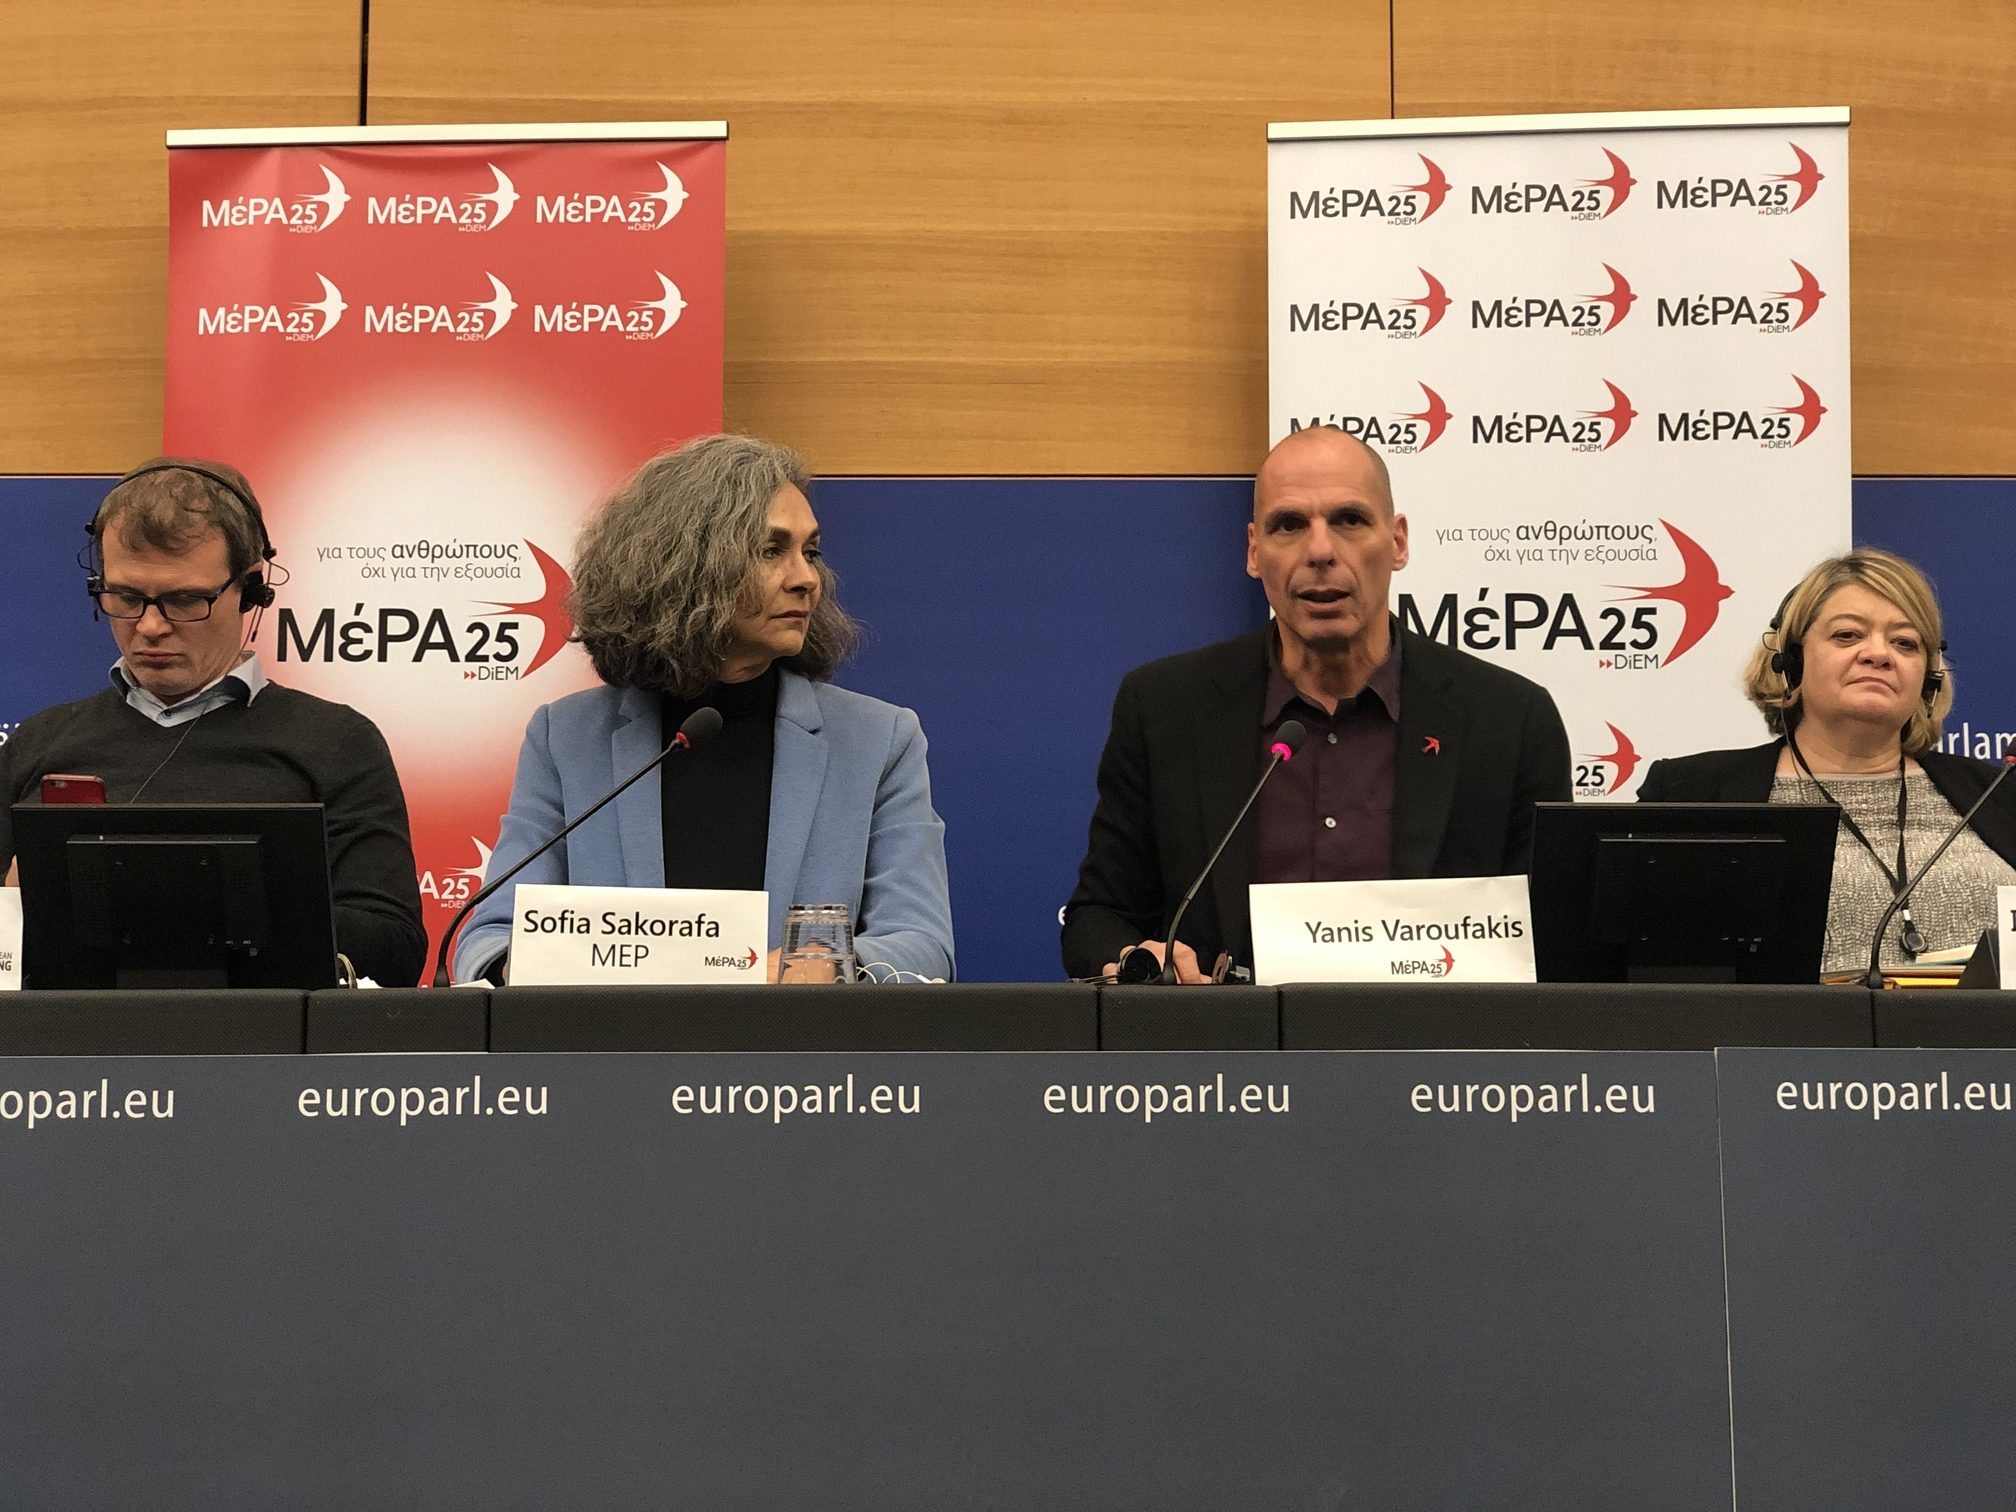 MEP Candidate and MeRA25 leader Yanis Varoufakis unveils political programme for Greece and Europe ahead of elections